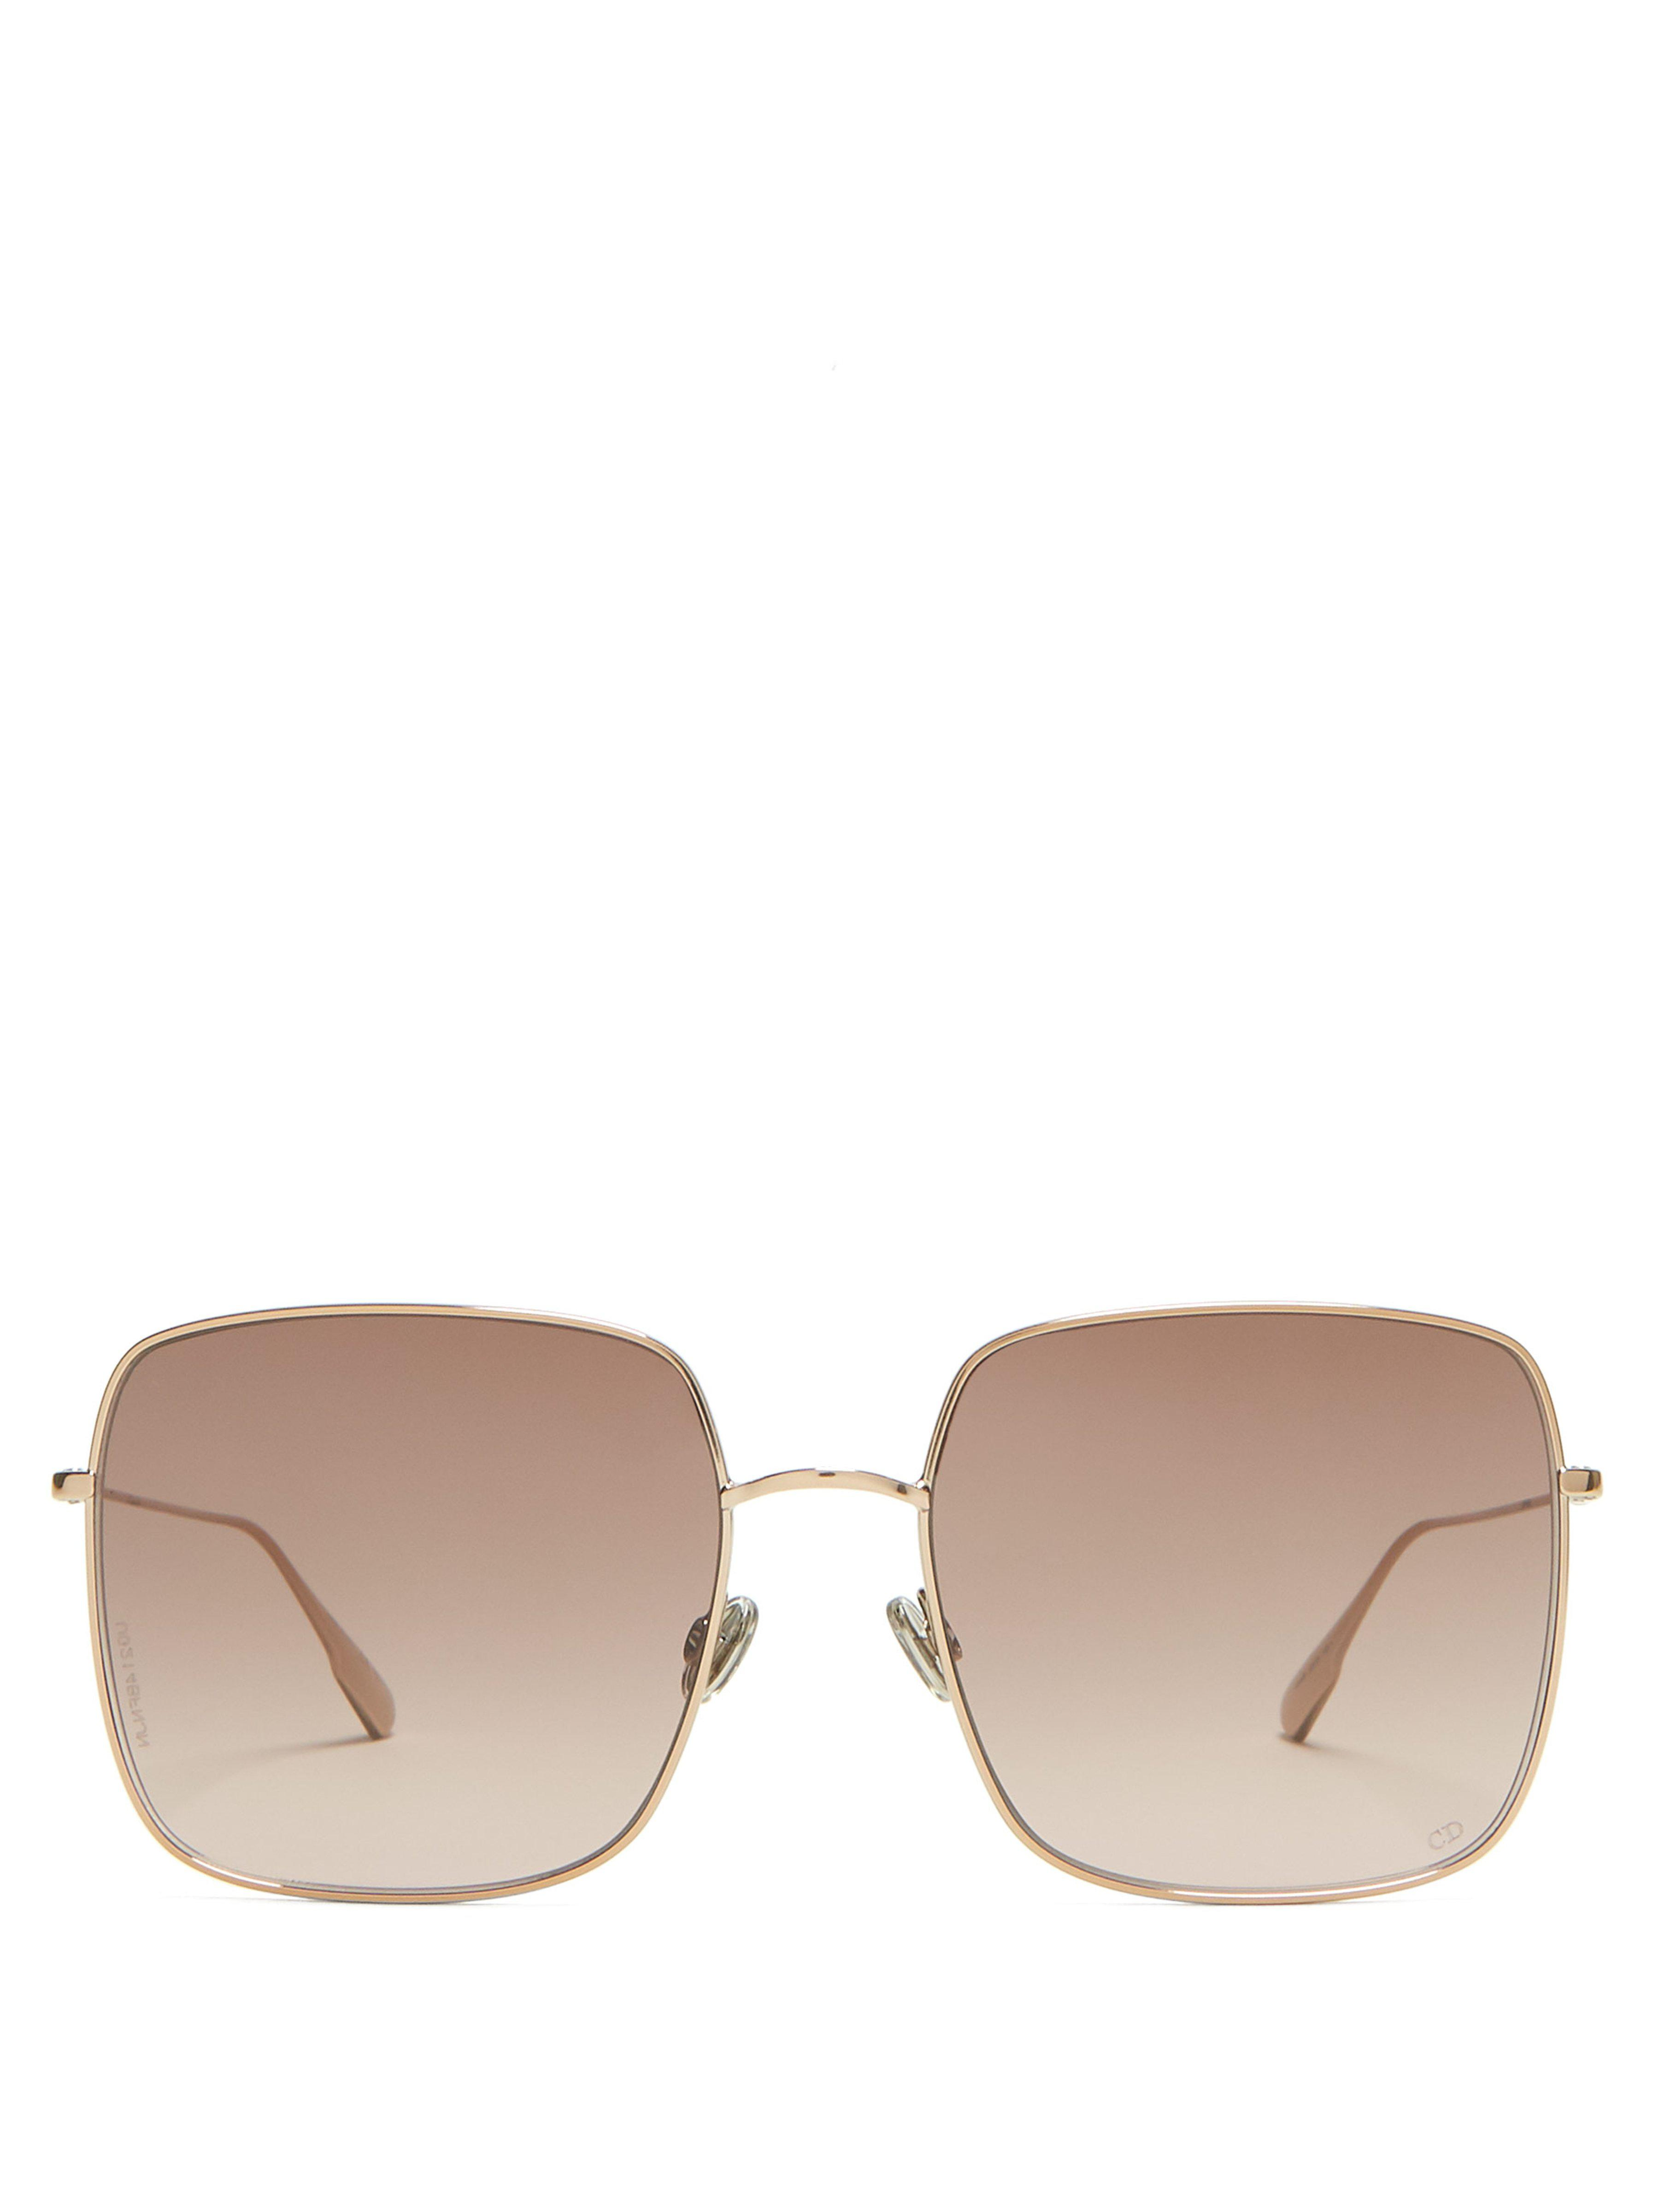 fc3750db03 Dior Stellaire1 Square Metal Sunglasses in Brown - Lyst